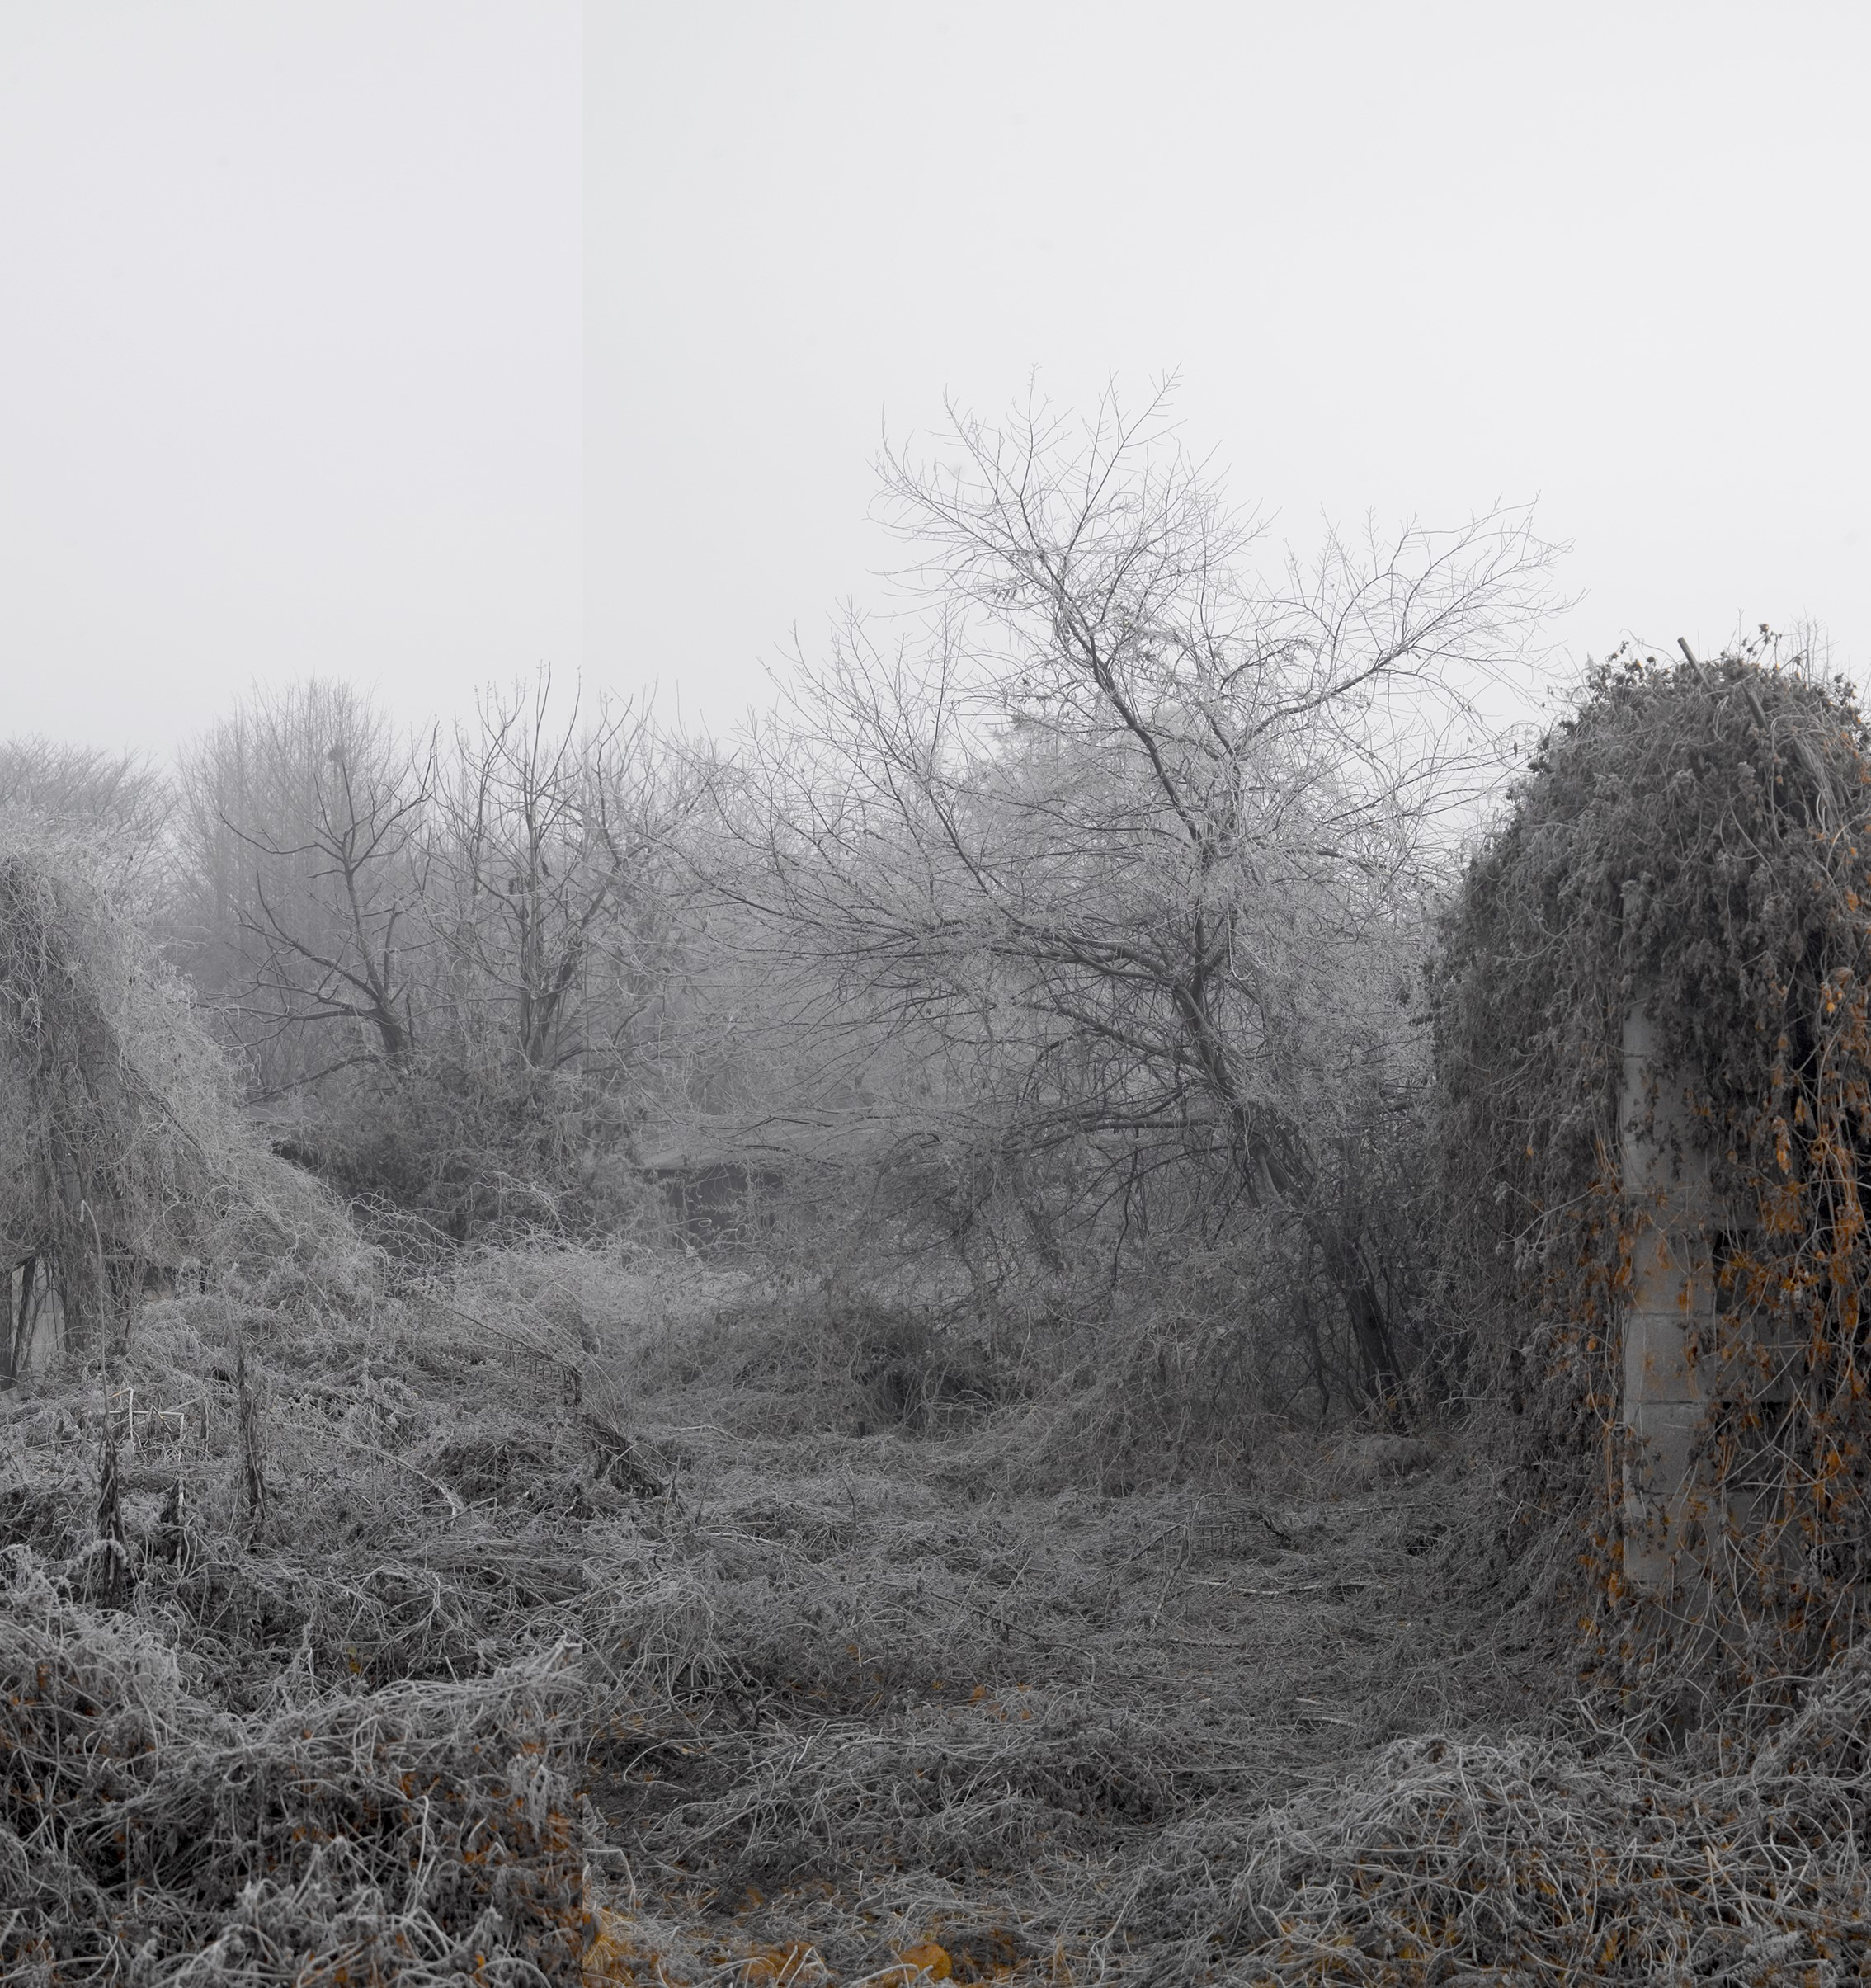 Honggoo Kang, Mist and Frost 3, Digital Print, 107x92cm, 2011, ONE AND J